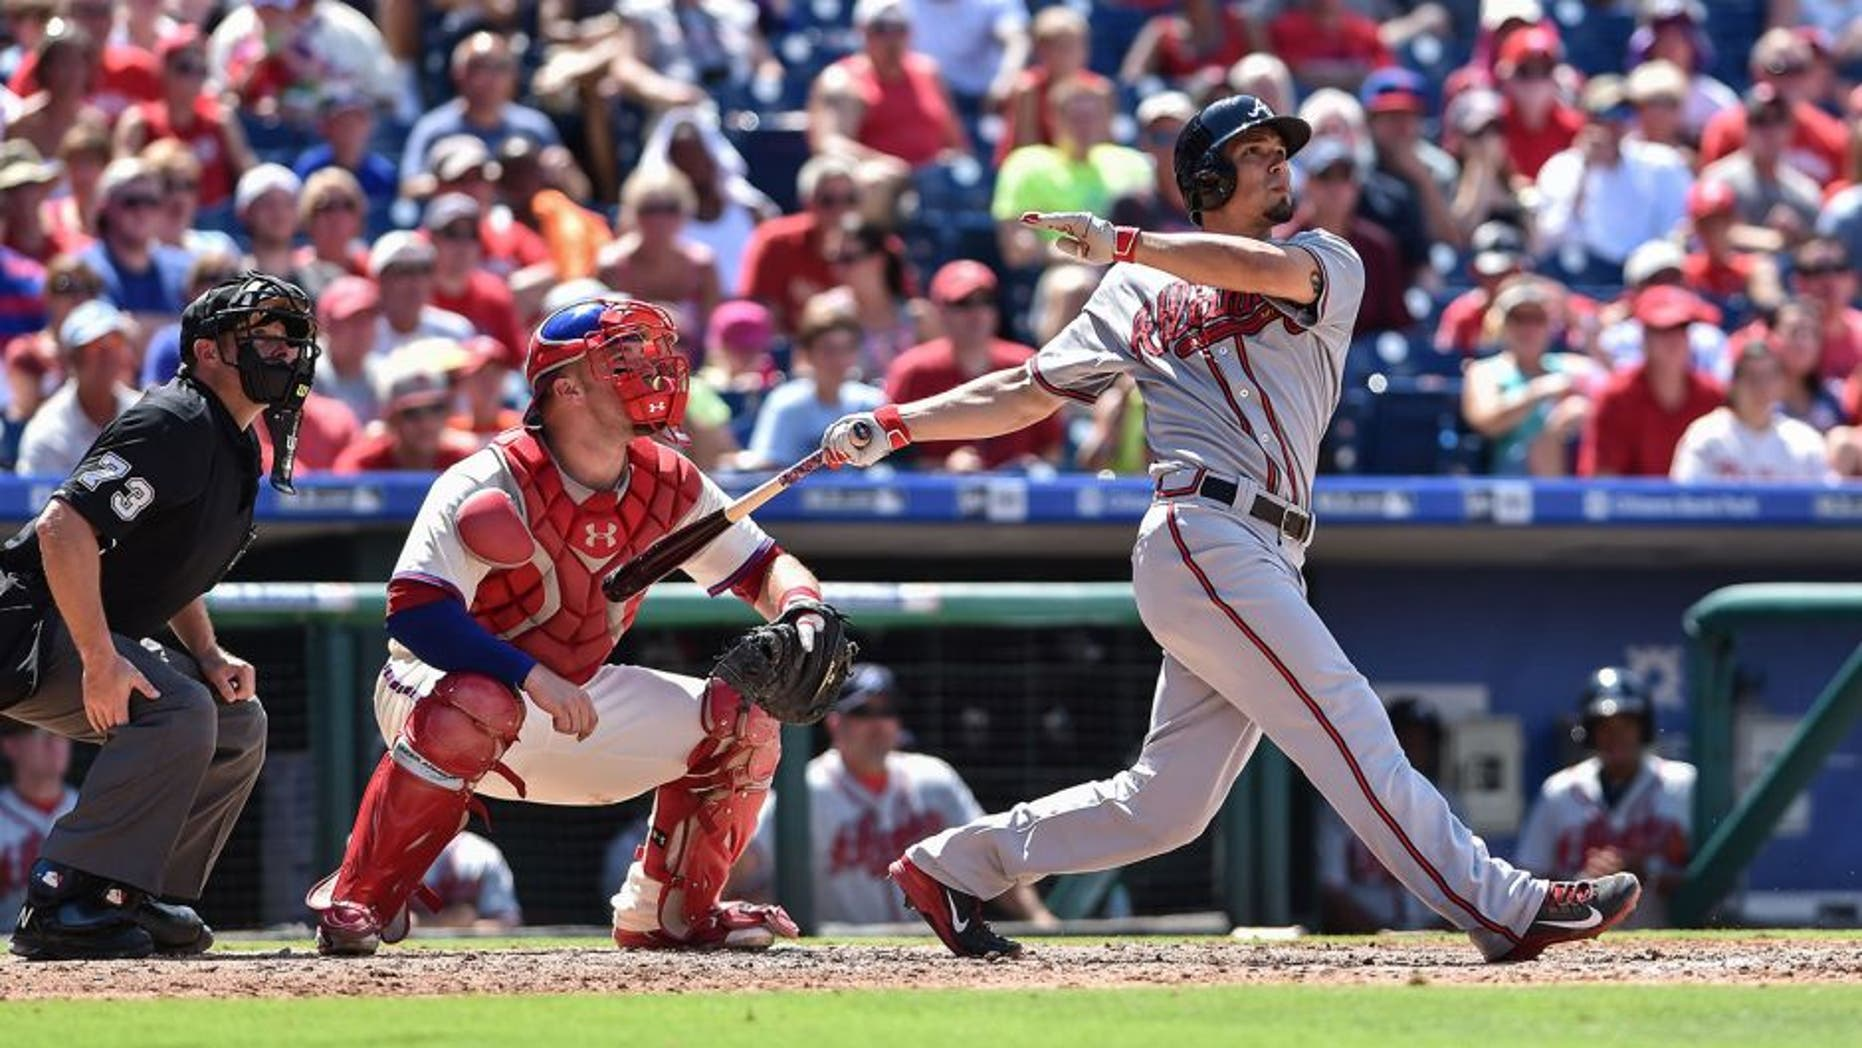 Aug 2, 2015; Philadelphia, PA, USA; Atlanta Braves second baseman Jace Peterson (8) hits a three run homer to right field during the fifth inning of the game against the Philadelphia Phillies at Citizens Bank Park. Mandatory Credit: John Geliebter-USA TODAY Sports